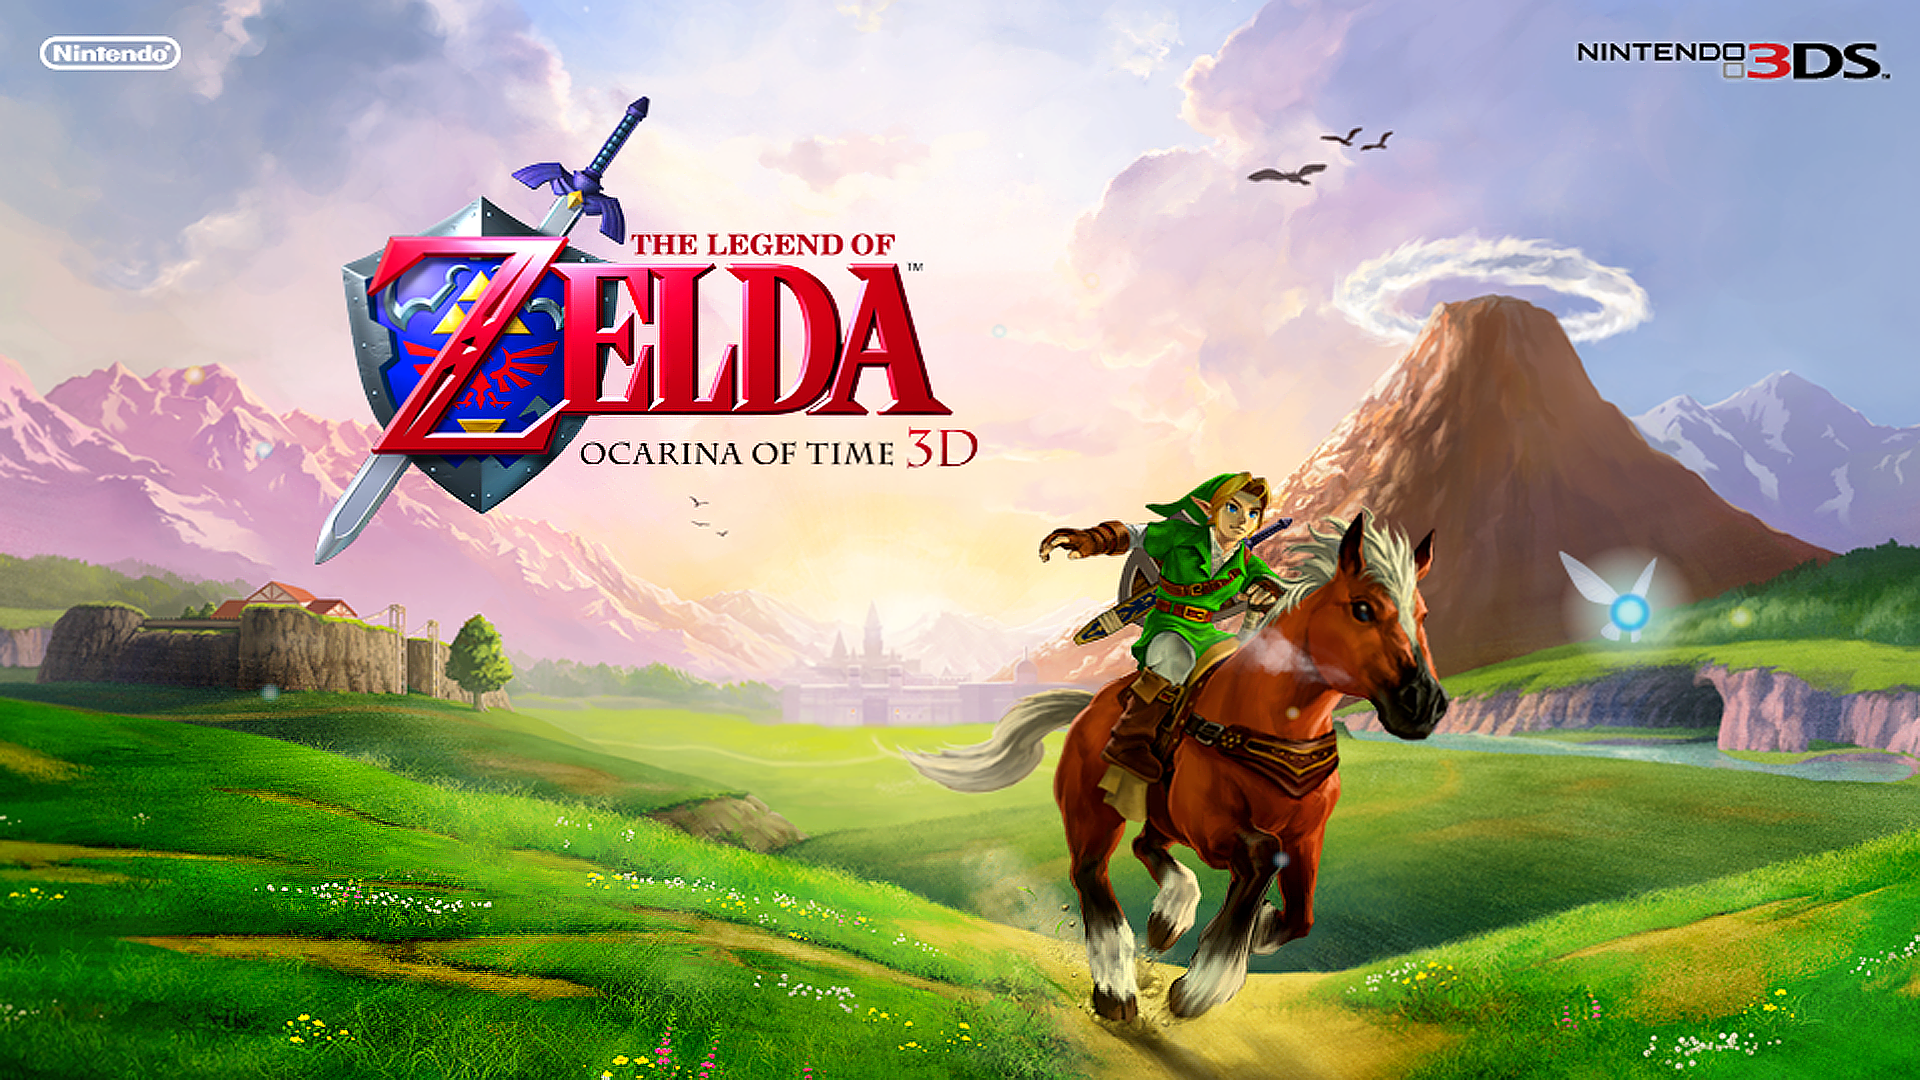 The Legend of Zelda: Ocarina of Time, A Twenty Year Reunion